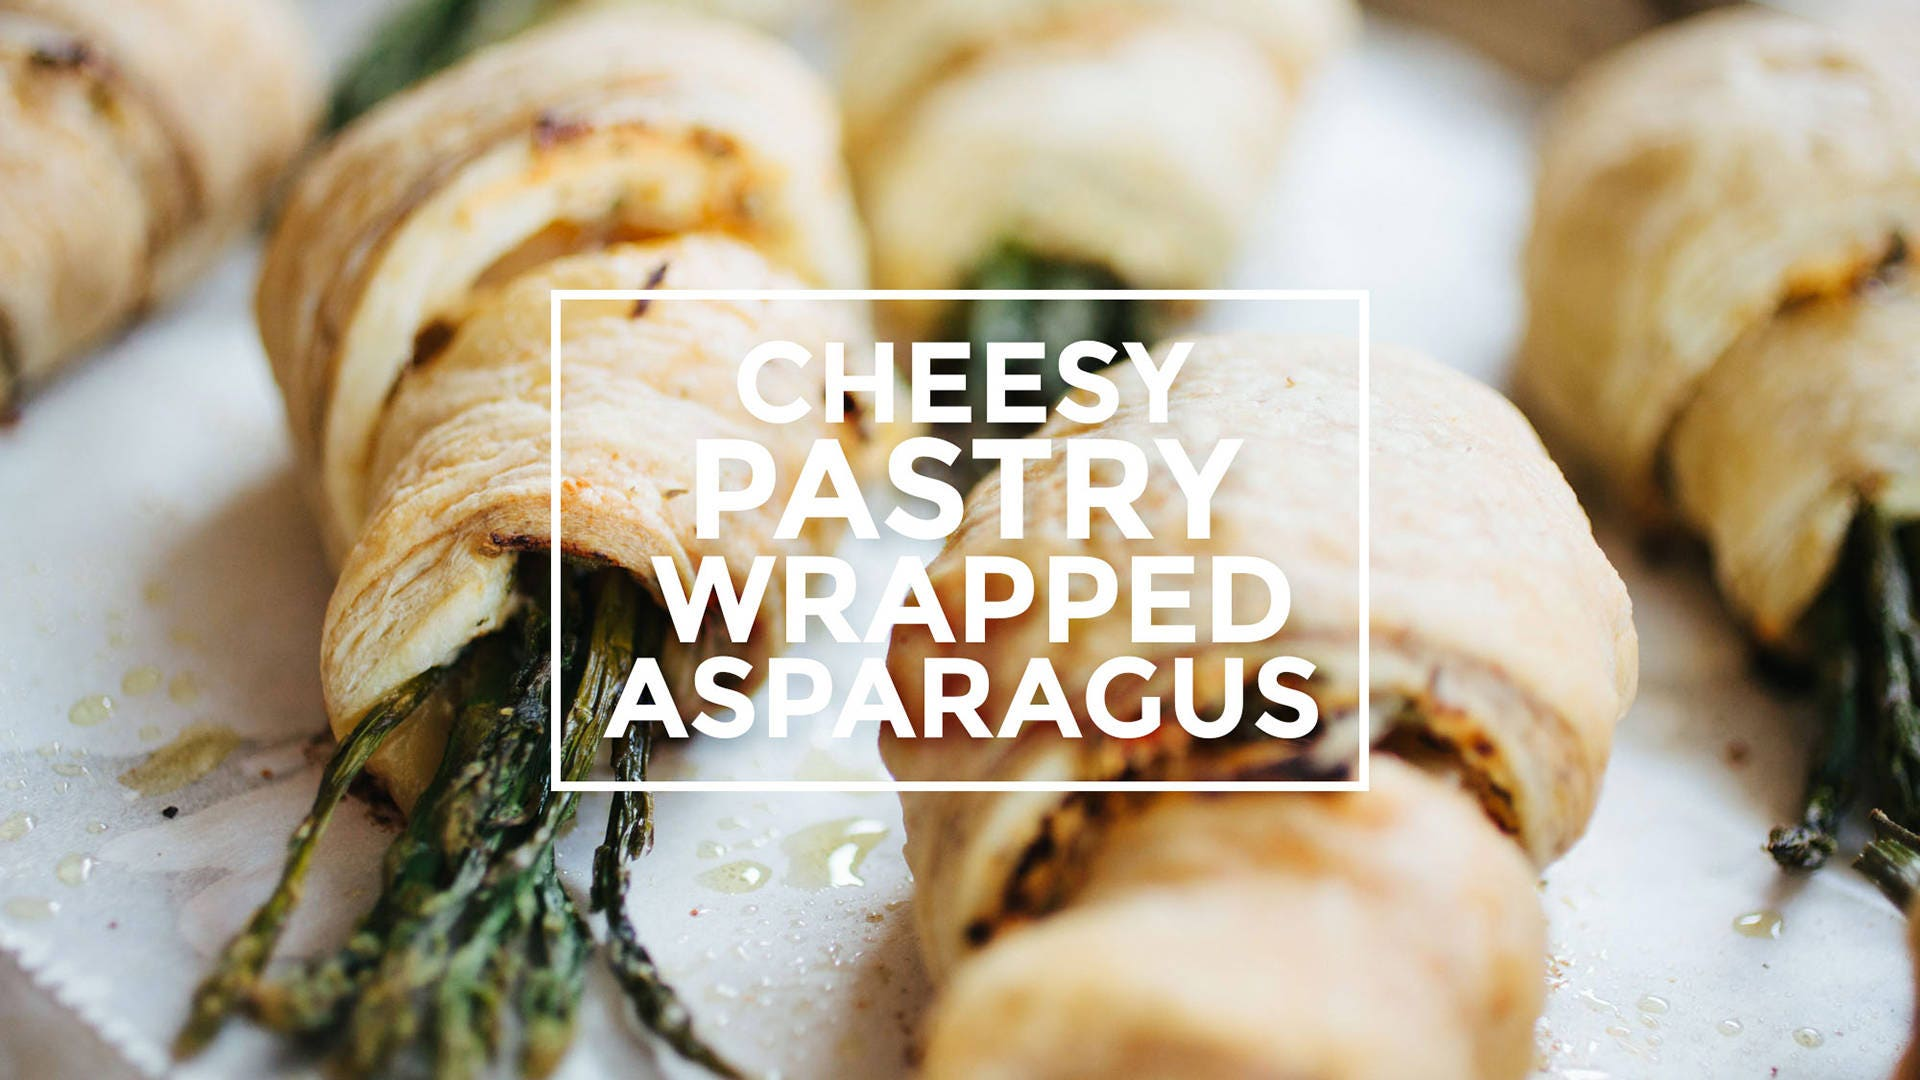 How to make Cheesy Pastry Wrapped Asparagus